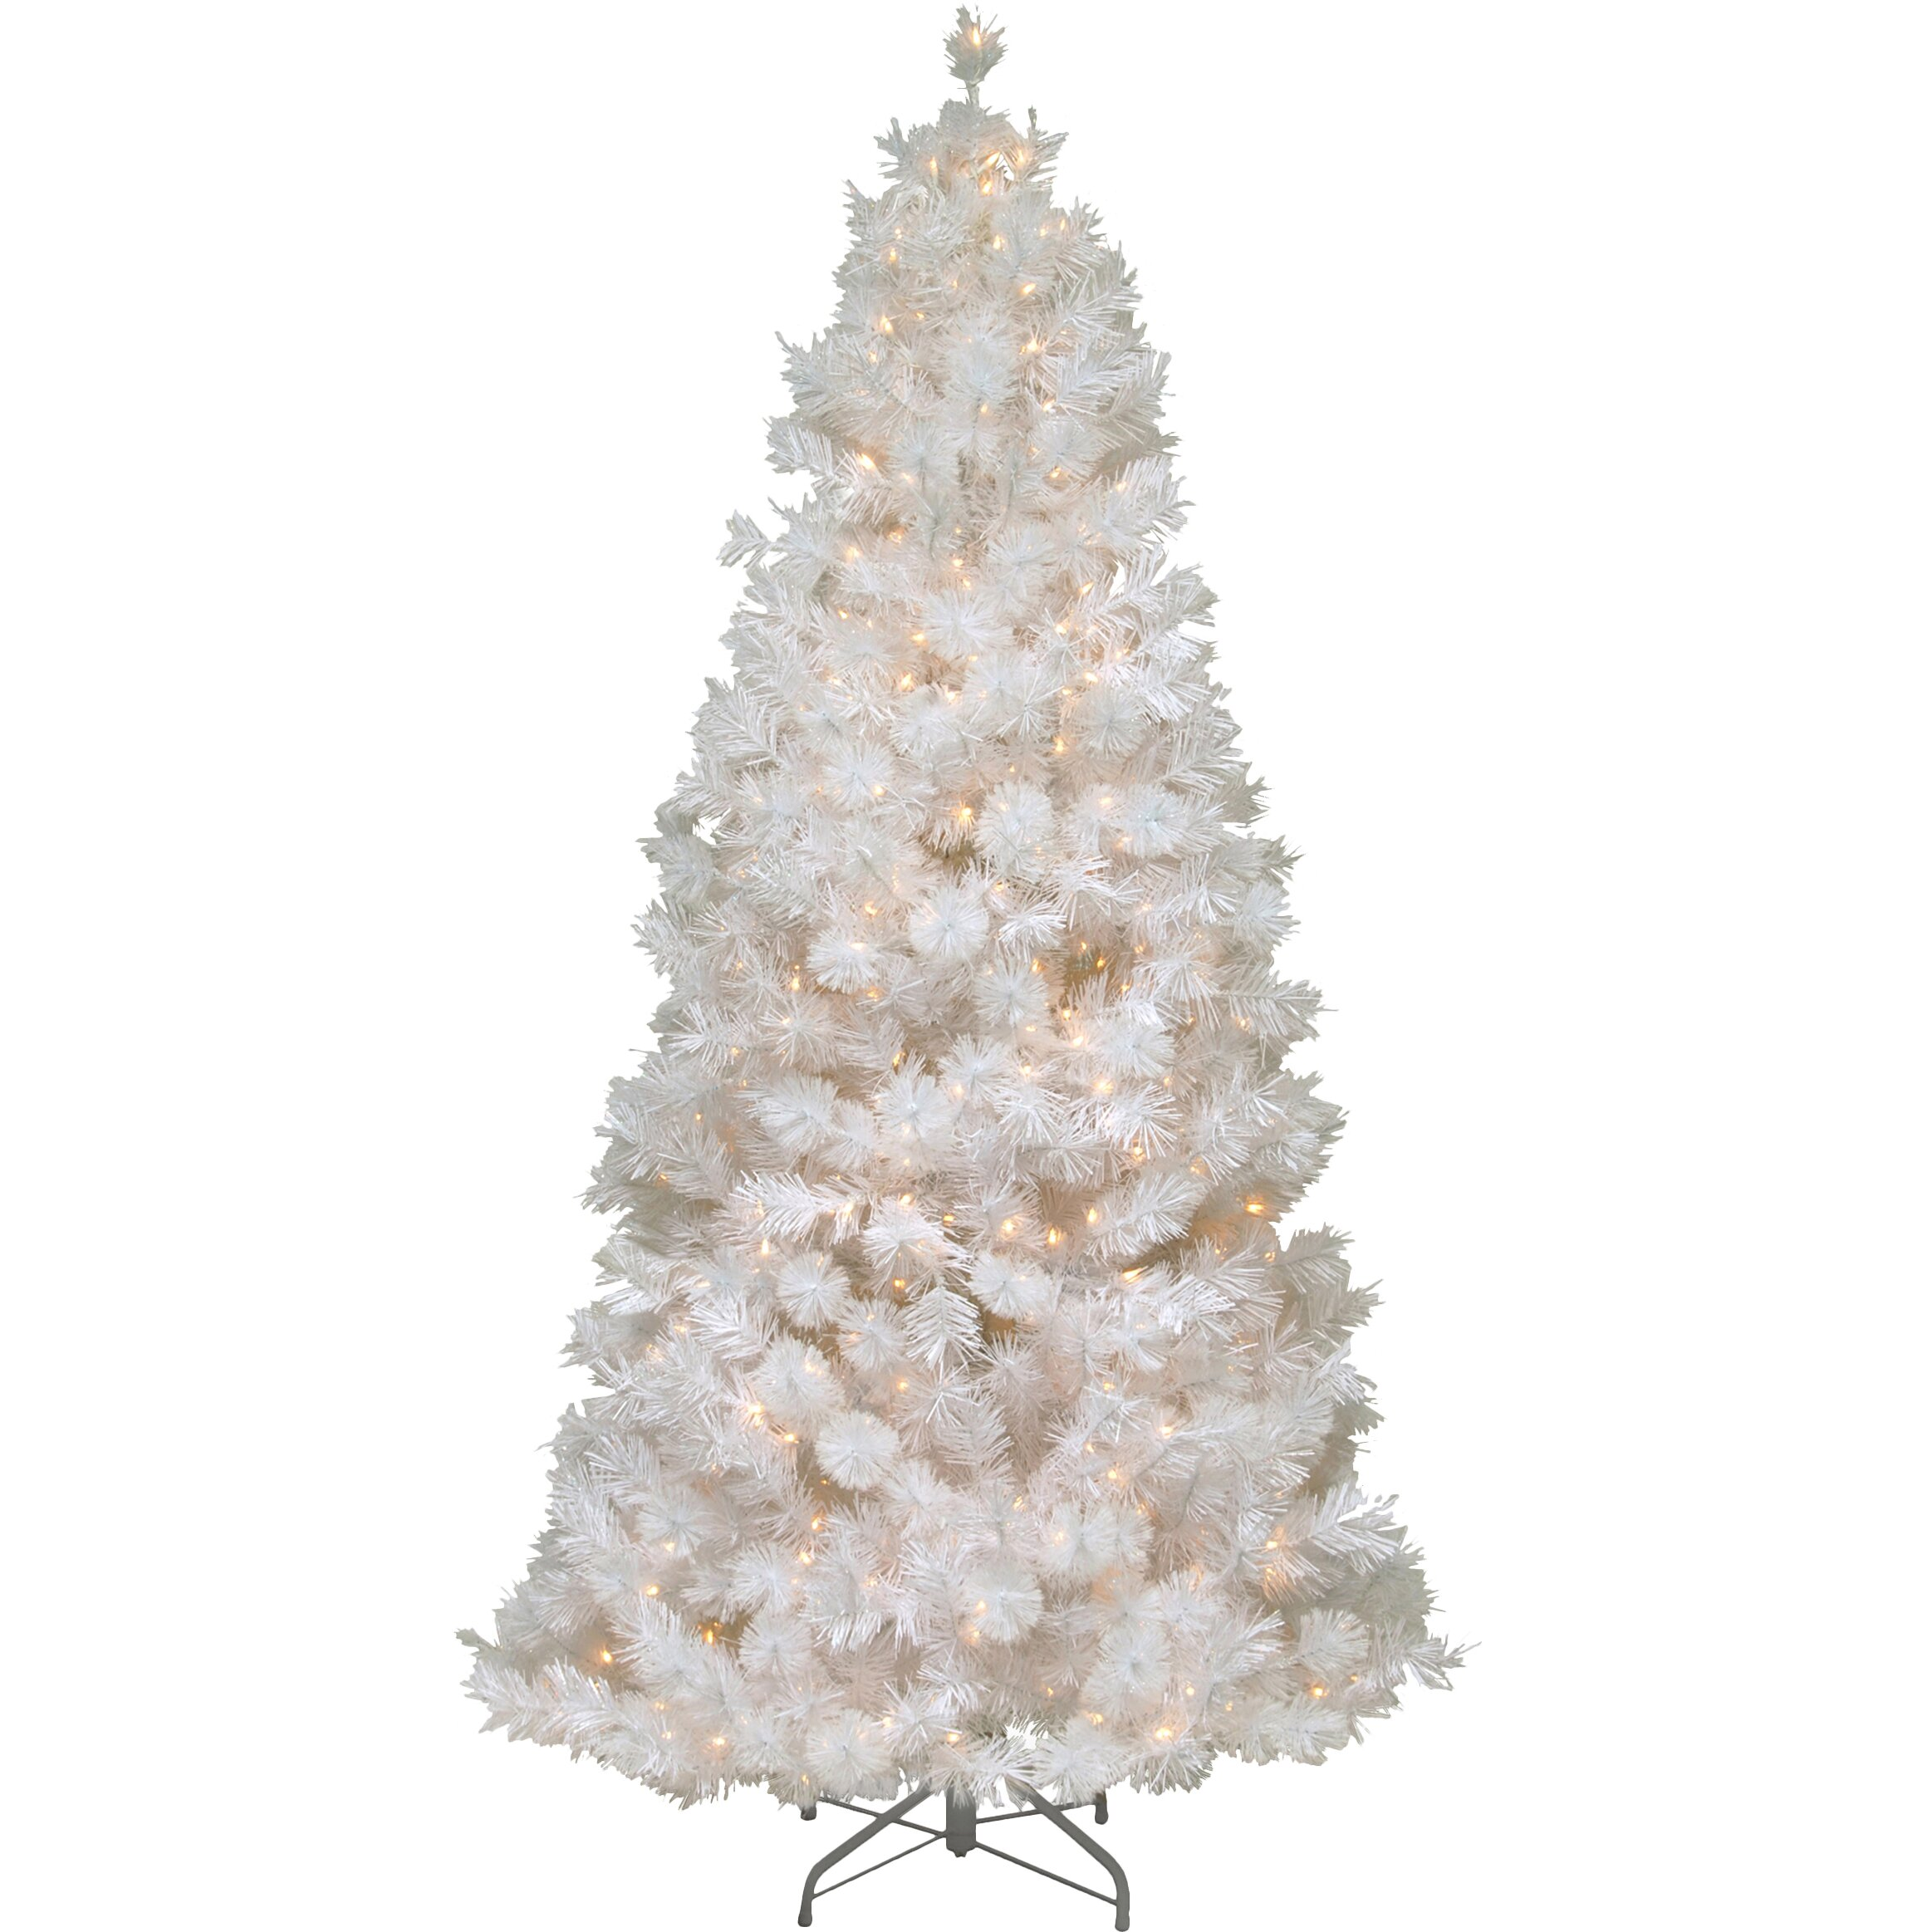 The Holiday Aisle 7.5' White Grande Slim Artificial ...